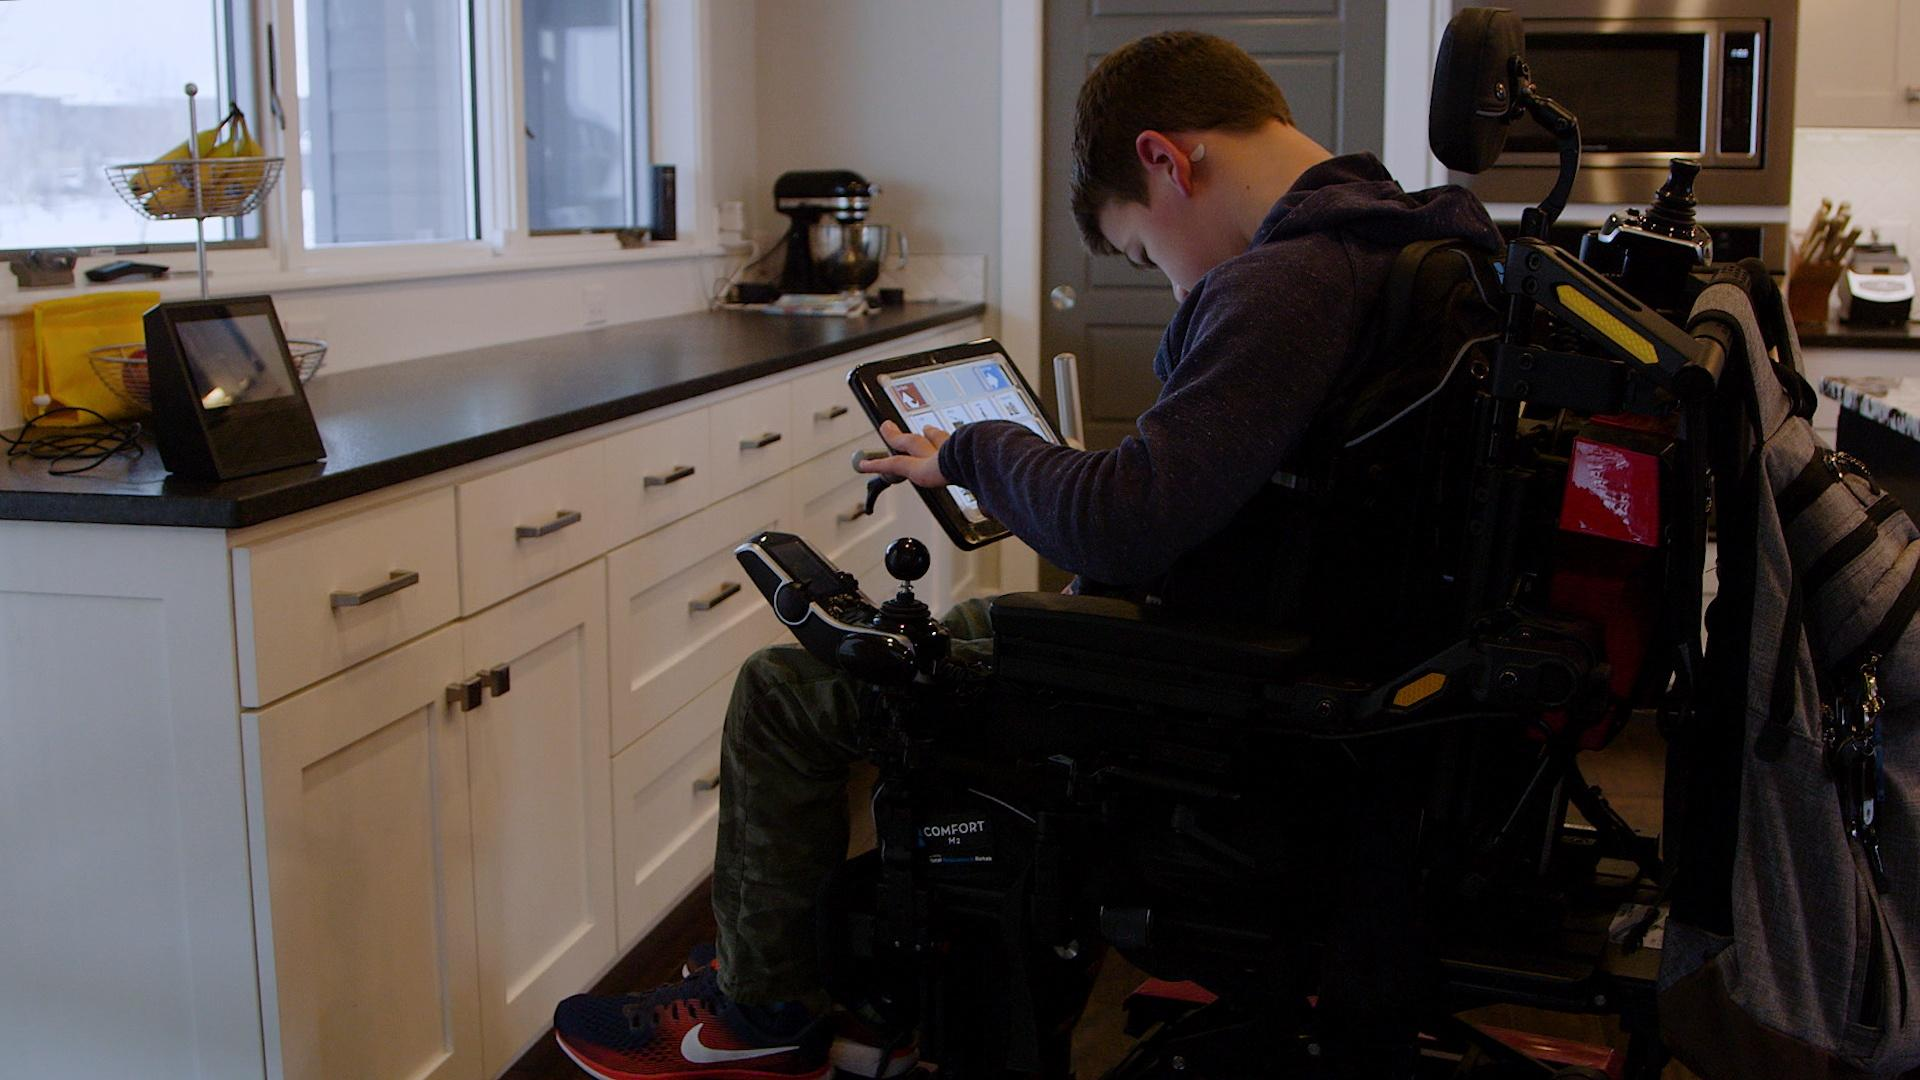 AI Helps Young Man with Cerebral Palsy Find Independence Hero